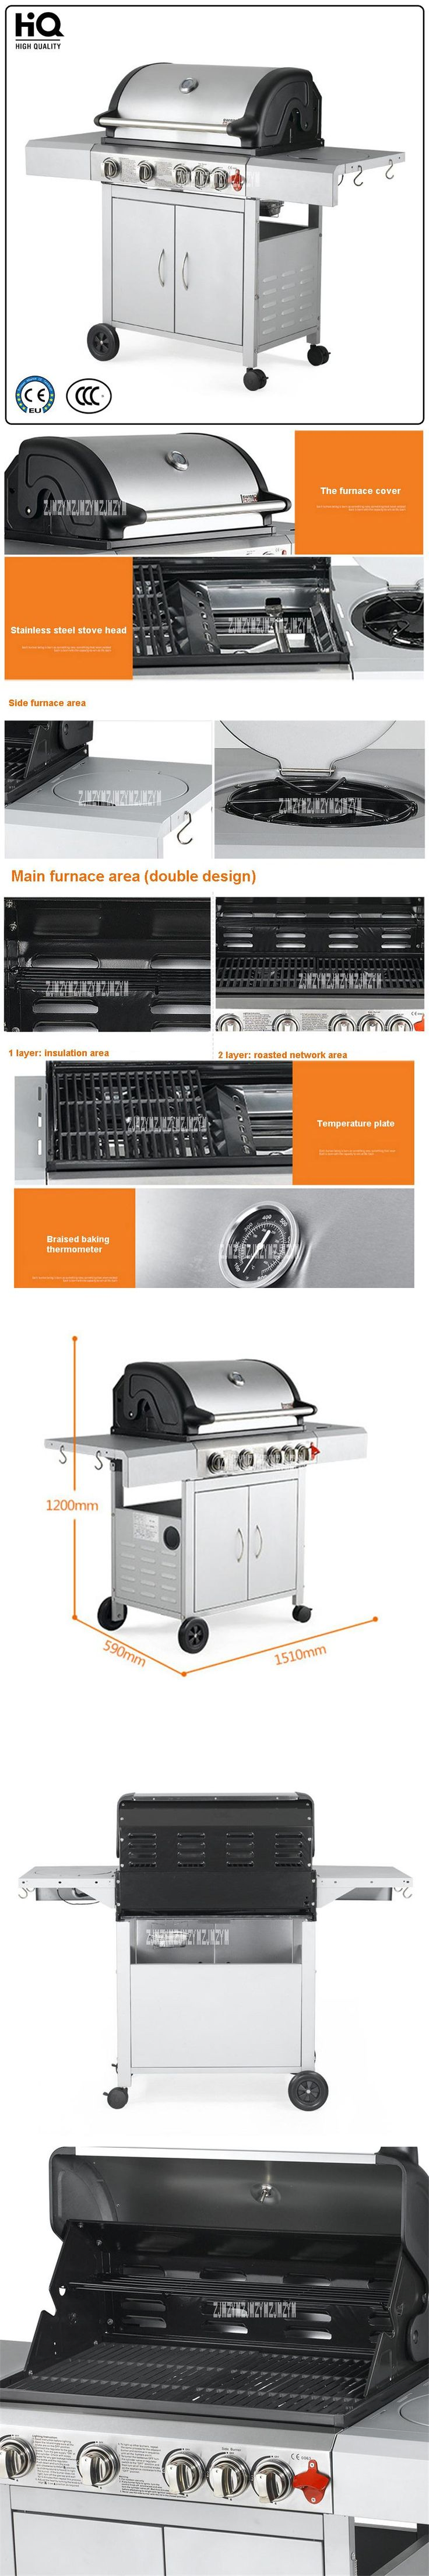 Stainless Steel Gas Barbecue Grills 3C/CE Outdoor Gas Stove zs-032,Multi